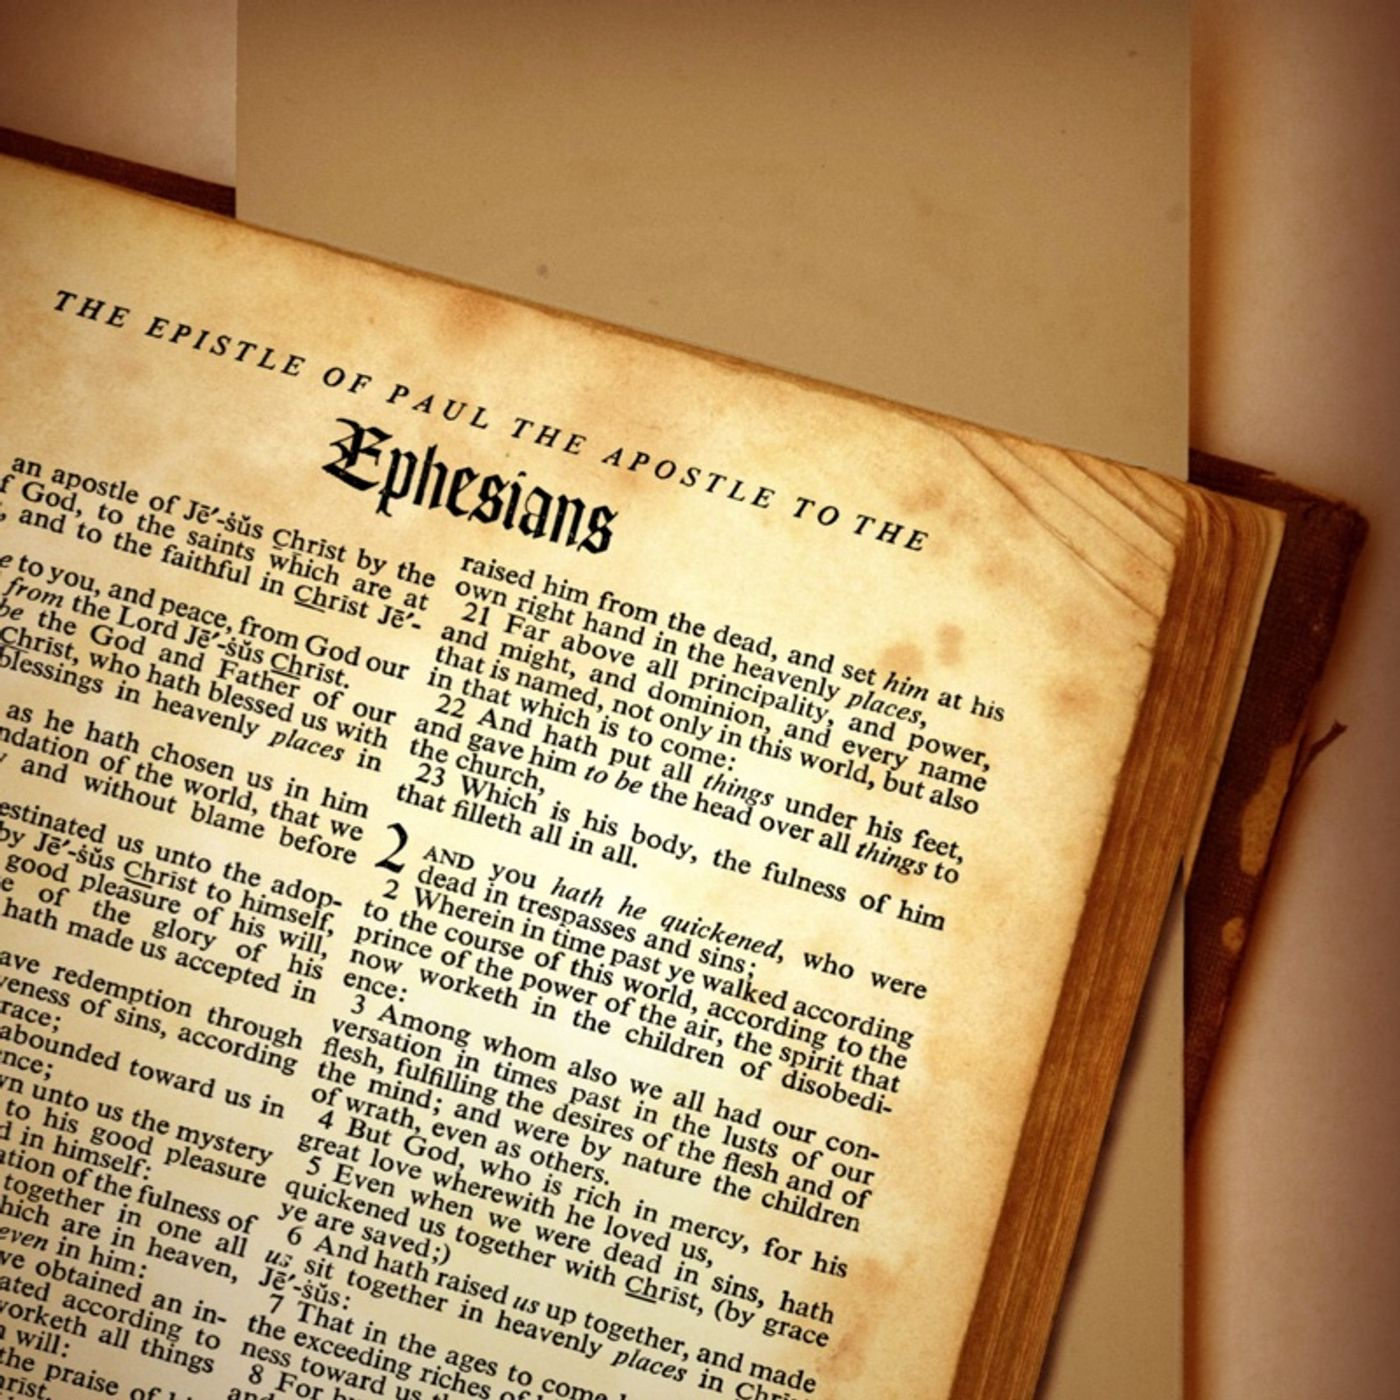 3 Questions about Ephesians 3:19